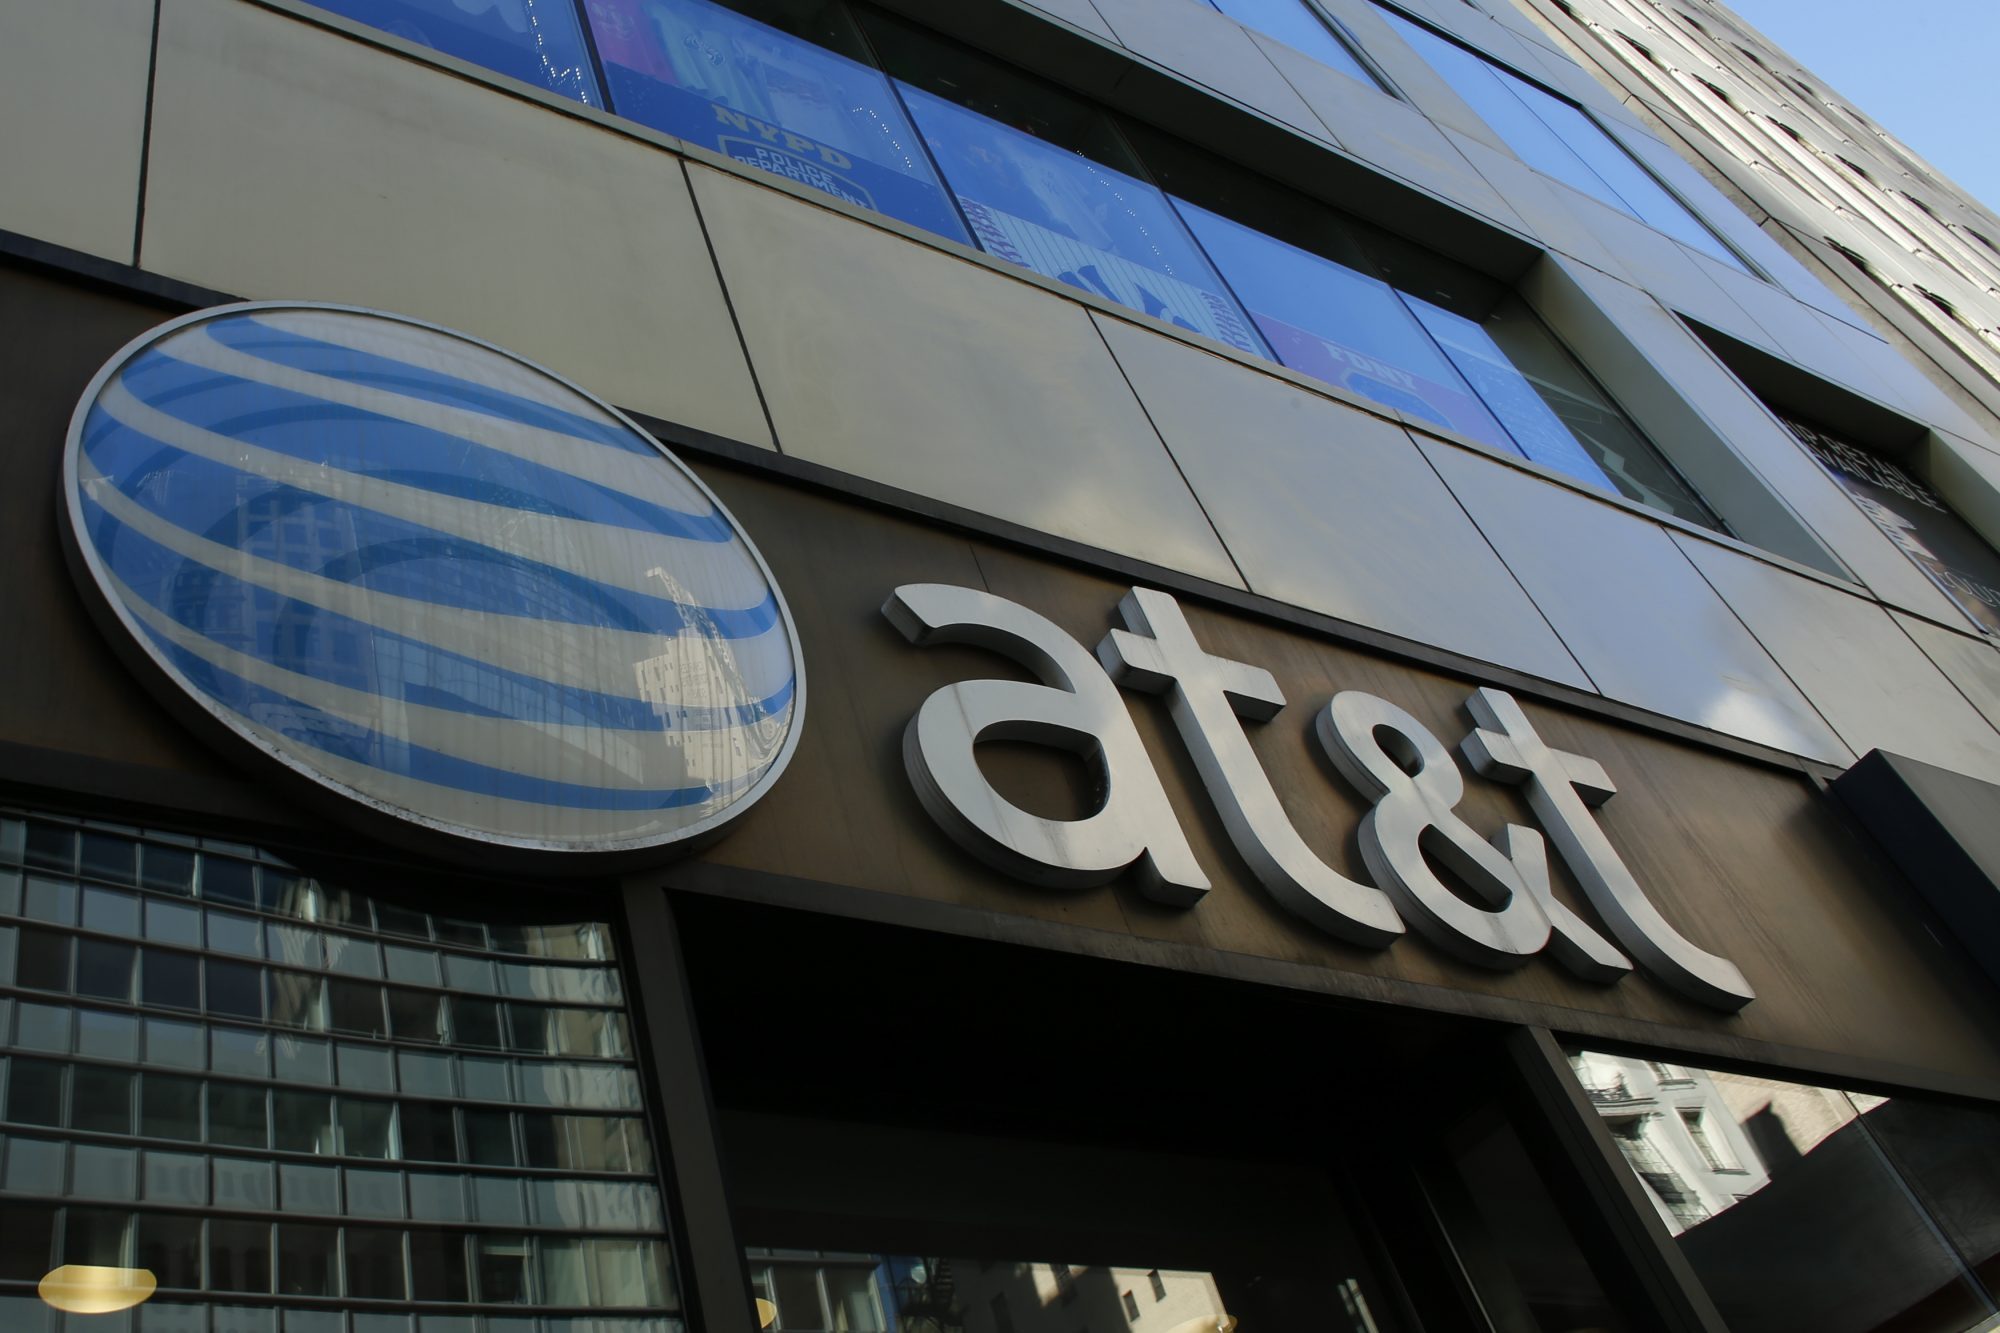 AT&T unveiled a mega-deal for Time Warner that would transform the telecom giant into a media-entertainment powerhouse positioned for a sector facing major technology changes. The stock-and-cash deal is valued at $108.7 billion including debt, and gives a value of $84.5 billion to Time Warner -- a major name in the sector that includes the Warner Bros. studios in Hollywood and an array of TV assets such as HBO and CNN. / AFP / KENA BETANCUR (Photo credit should read KENA BETANCUR/AFP/Getty Images)